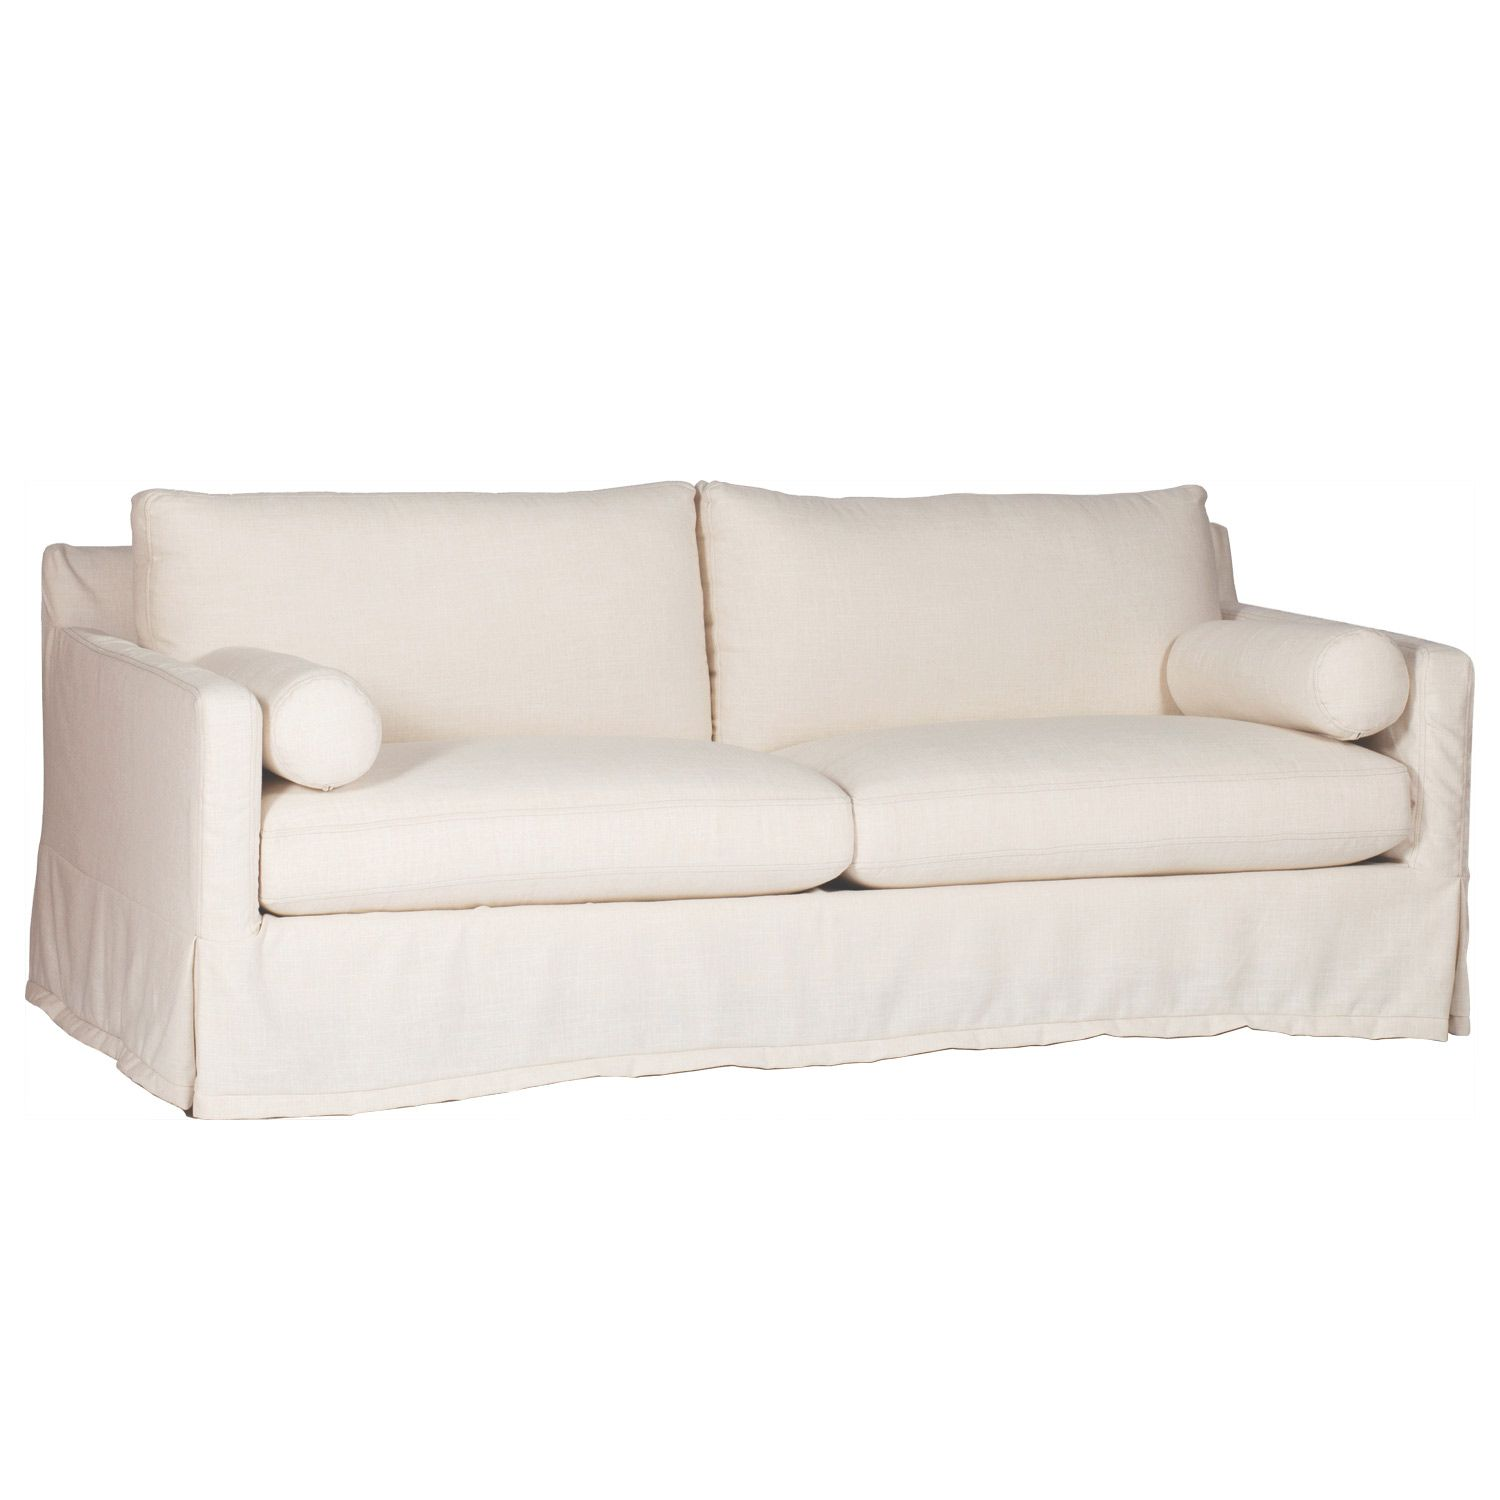 Gabby Furniture Hayes Sofa from Layla Grace couch